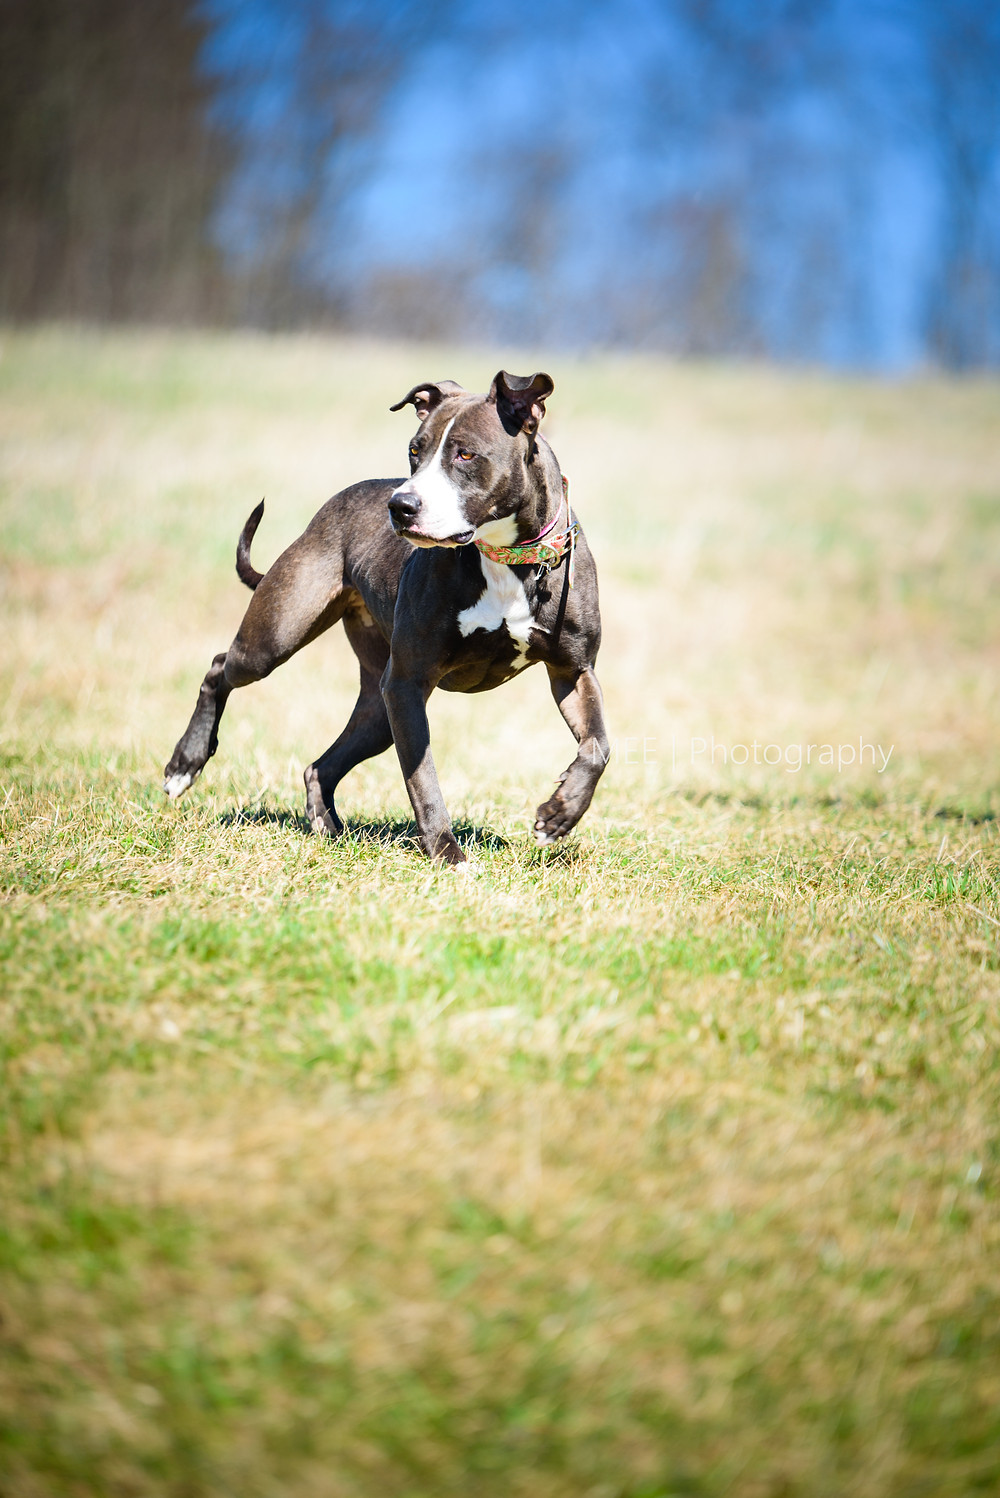 A mixed pit bull breed dog available for adoption at the Hancock County Animal Shelter in New Cumberland, West Virginia. Dog pictured having fun outside in a field.